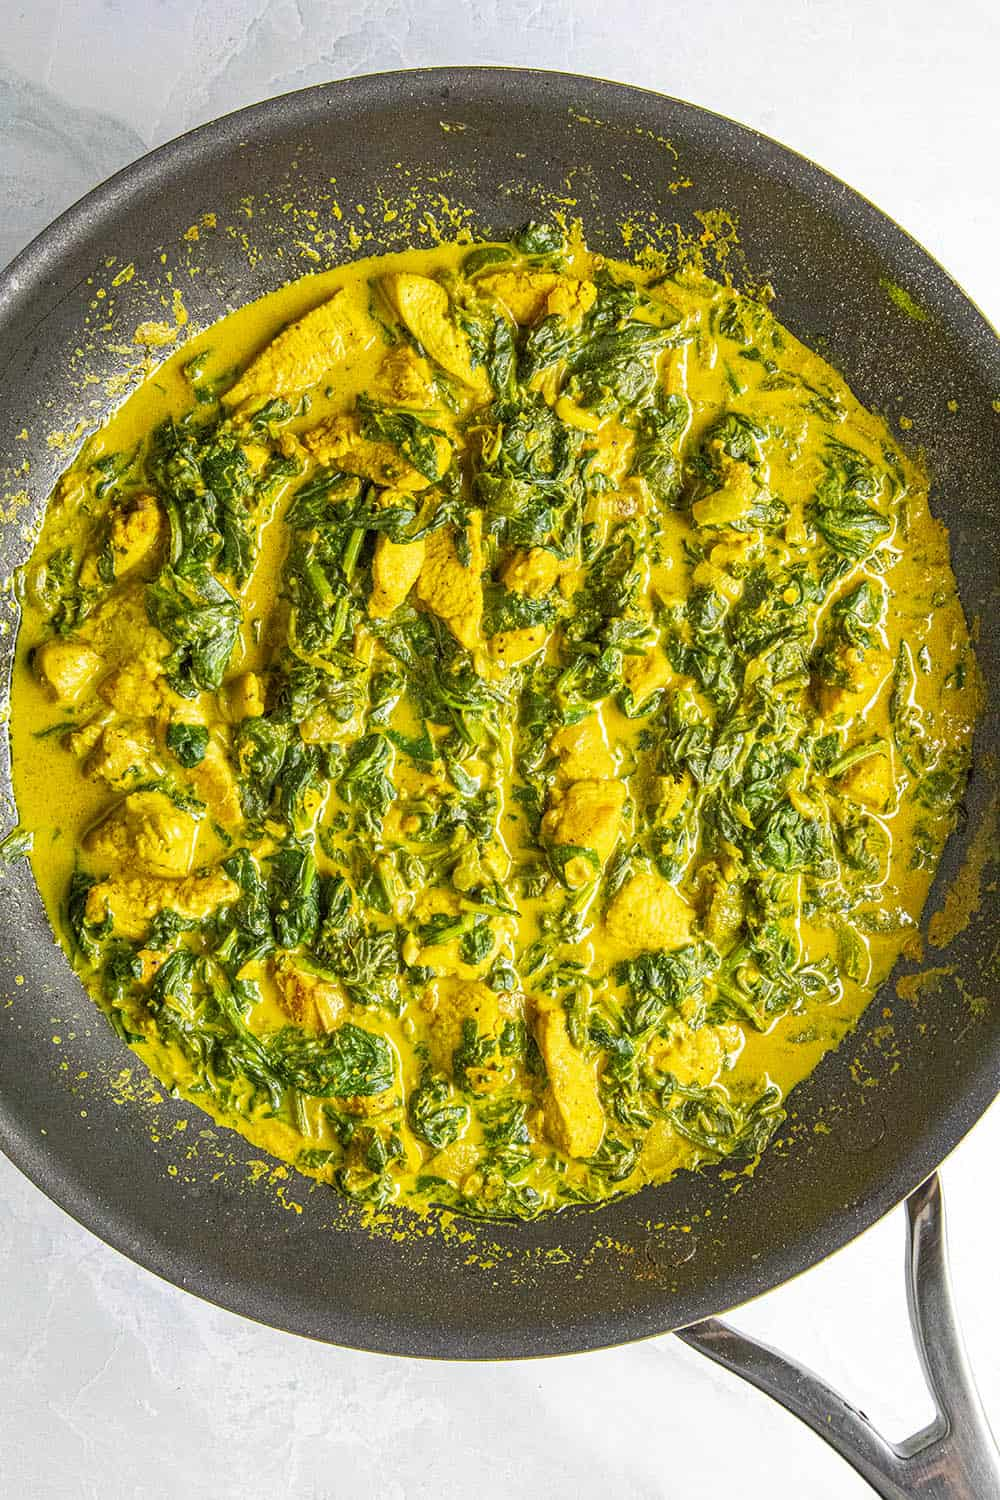 Simmering the chicken saag in a pan